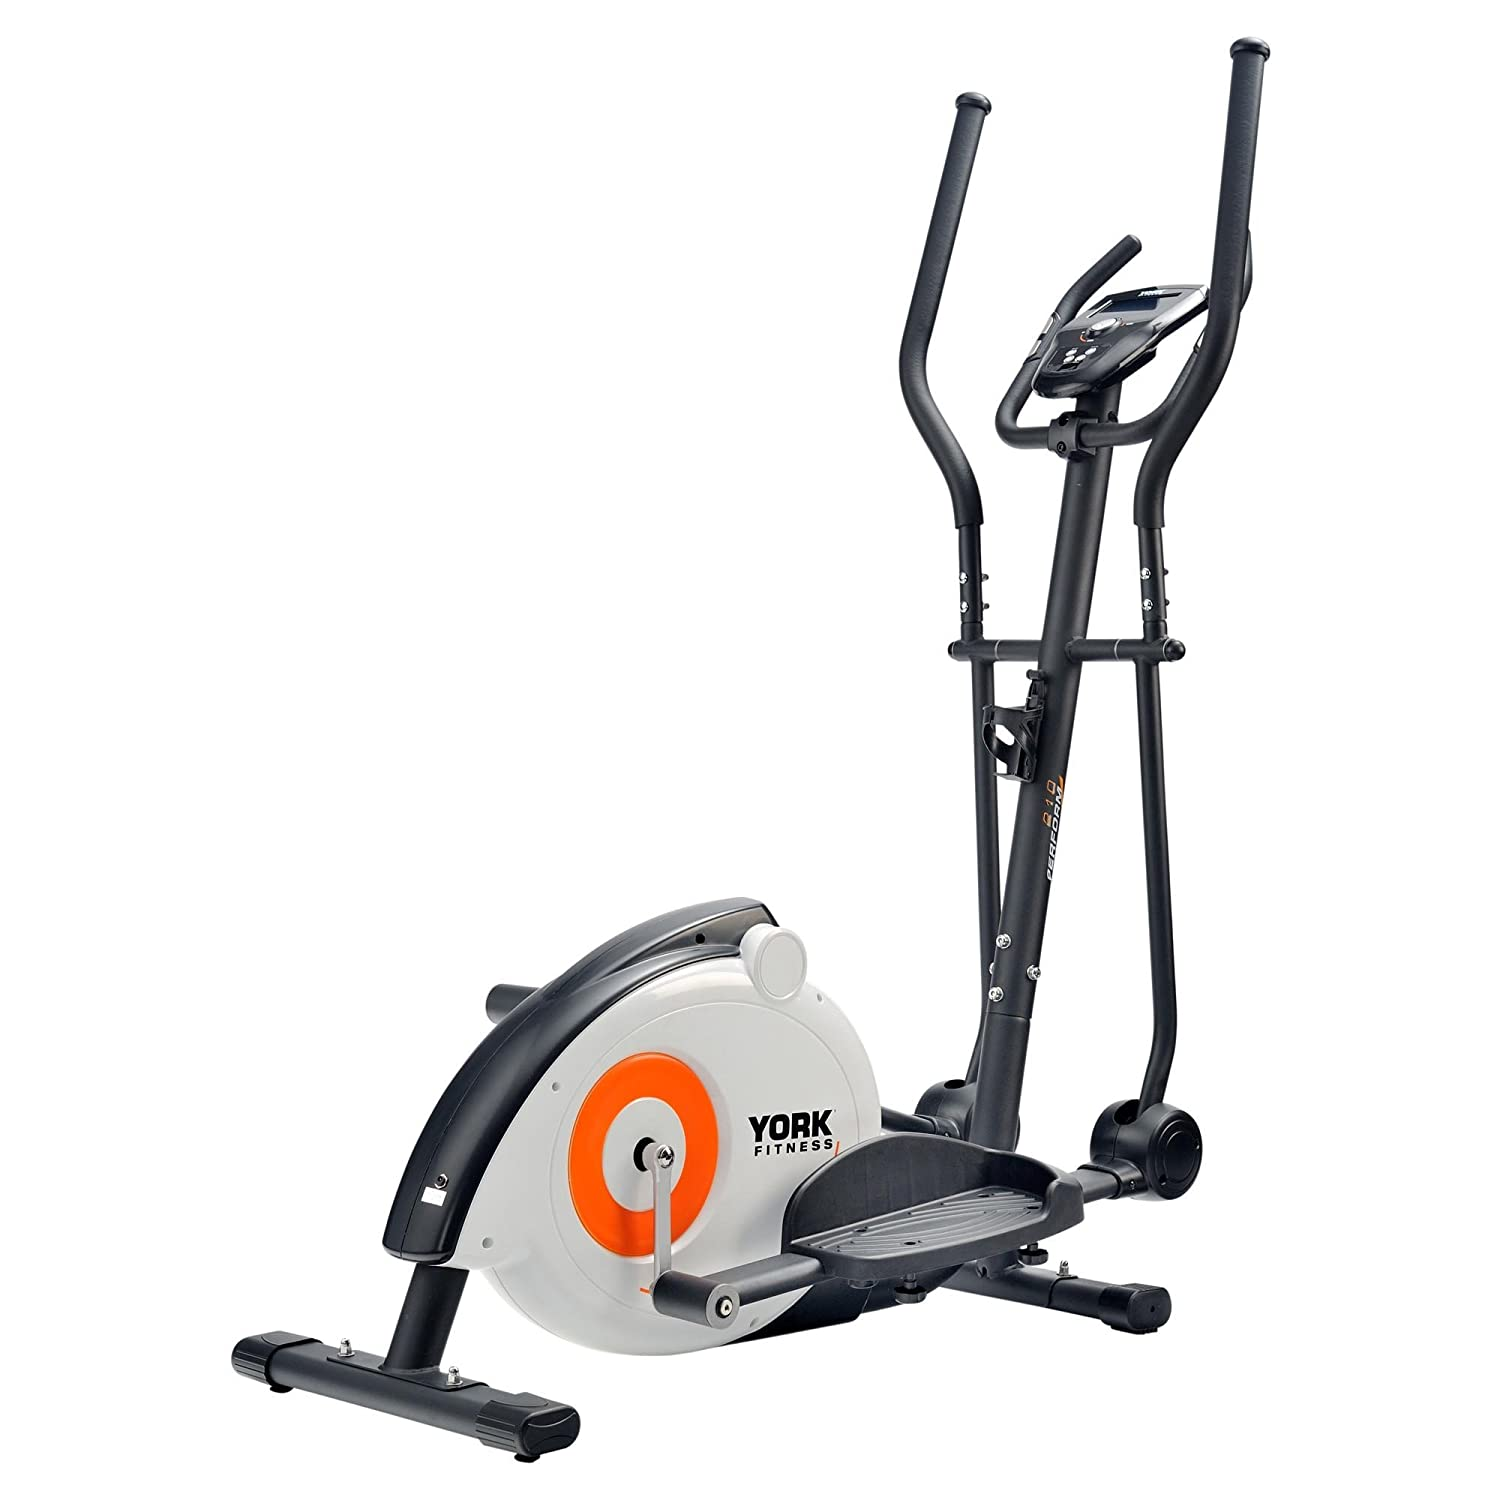 york 3100 cross trainer. york fitness perform 210 cross trainer - white/black/orange: amazon.co.uk: sports \u0026 outdoors 3100 i